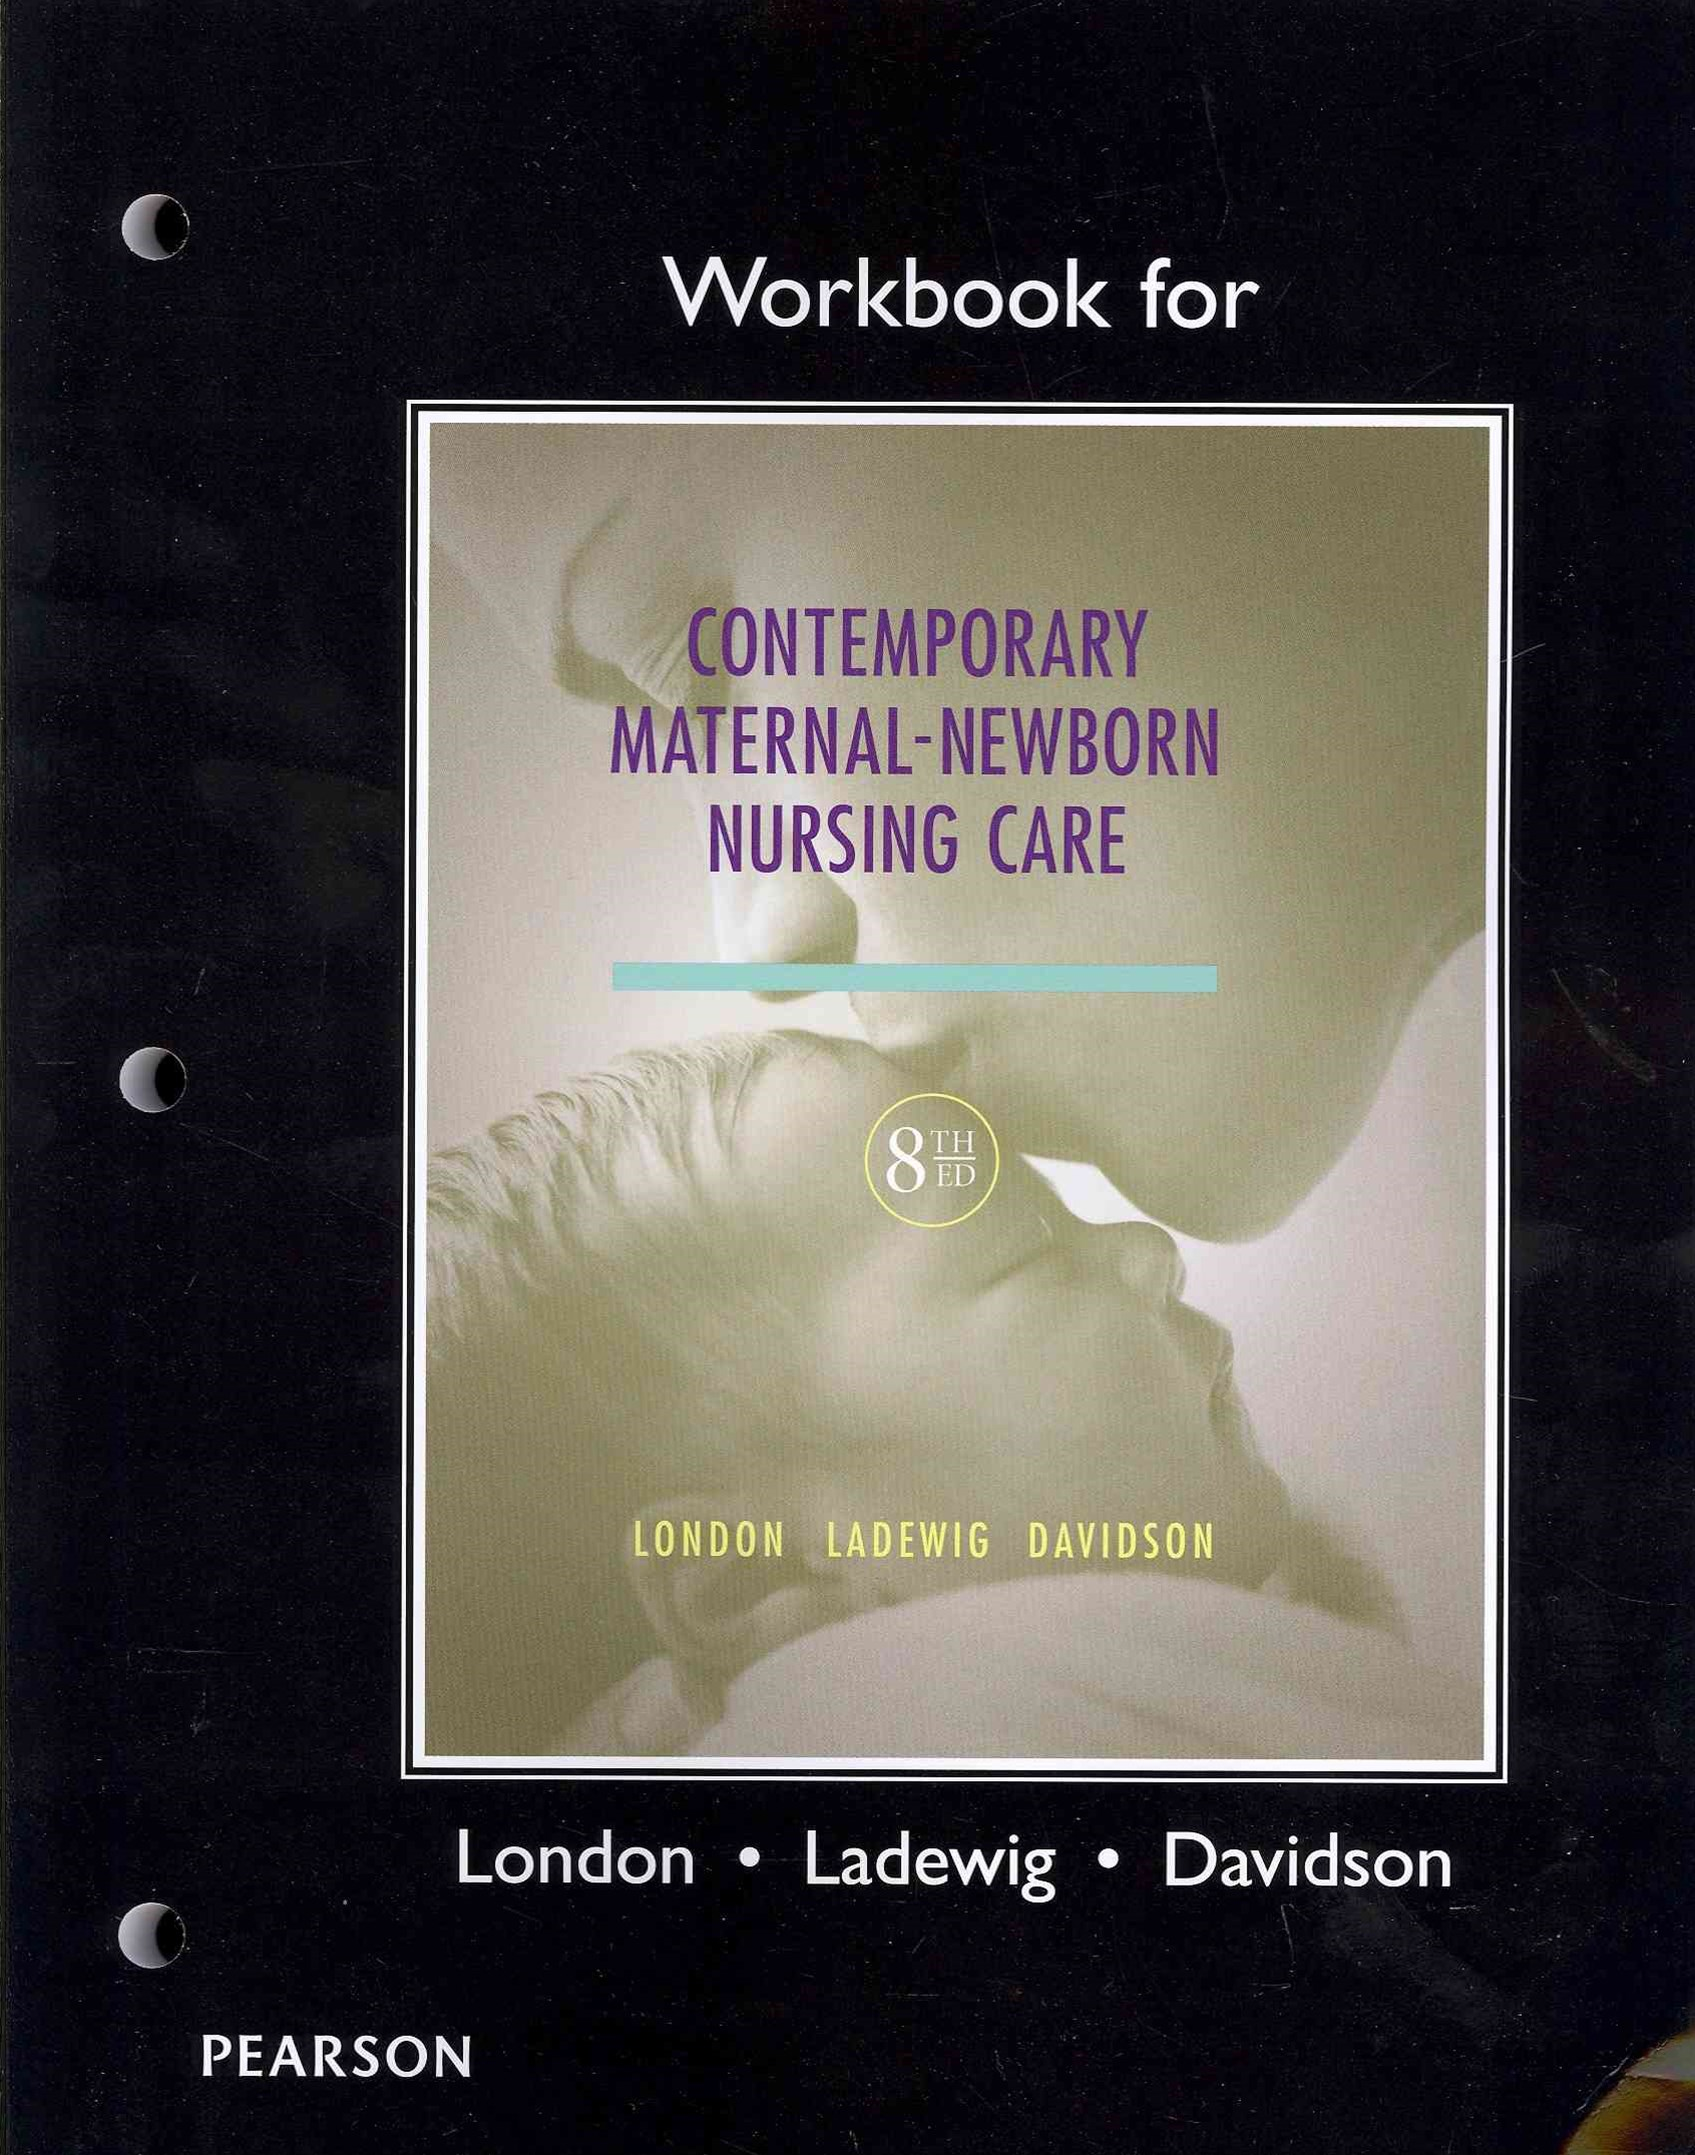 Workbook for Contemporary Maternal-Newborn Nursing